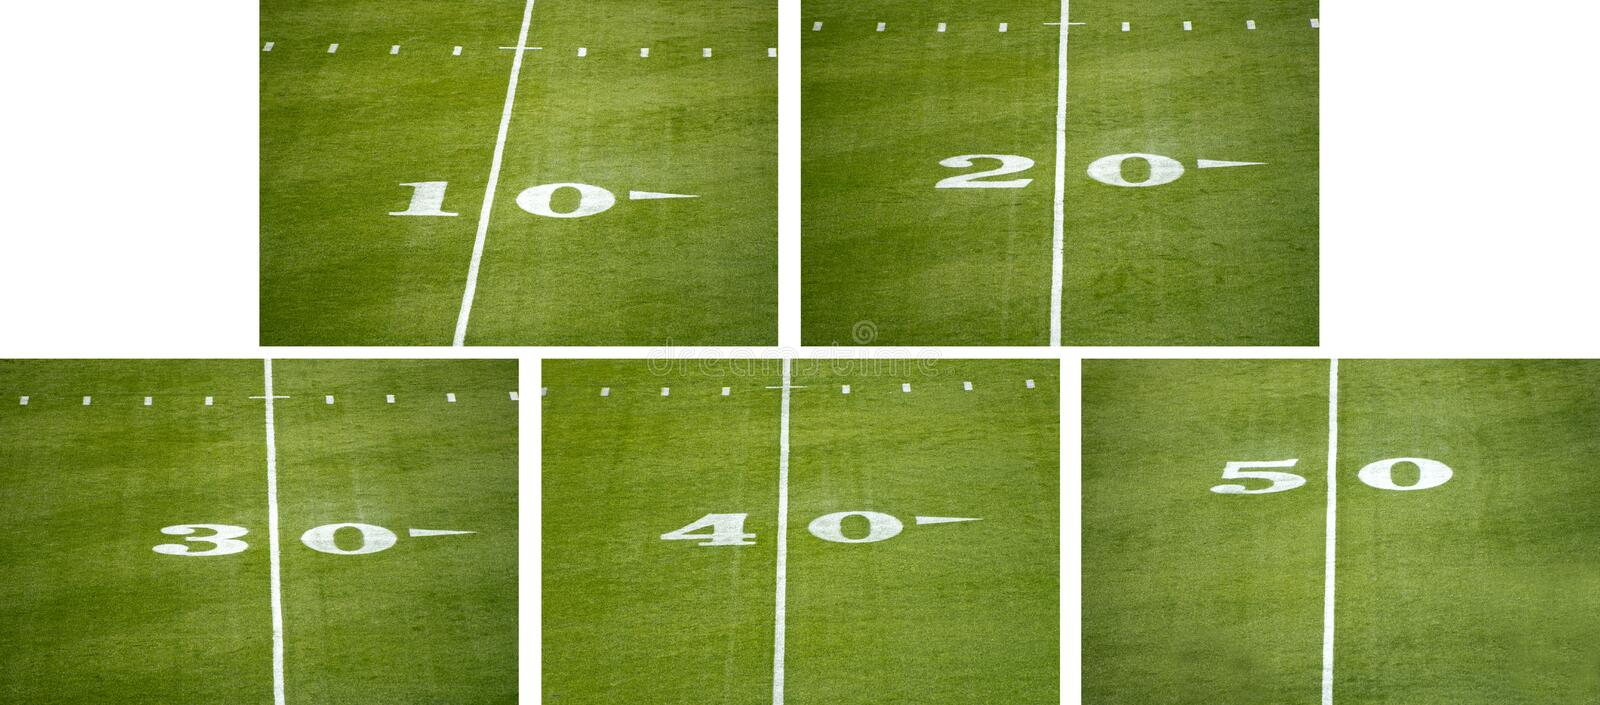 American NFL Football Field Number Line Markers. American NFL or college football field background images with yard line number markers royalty free stock images